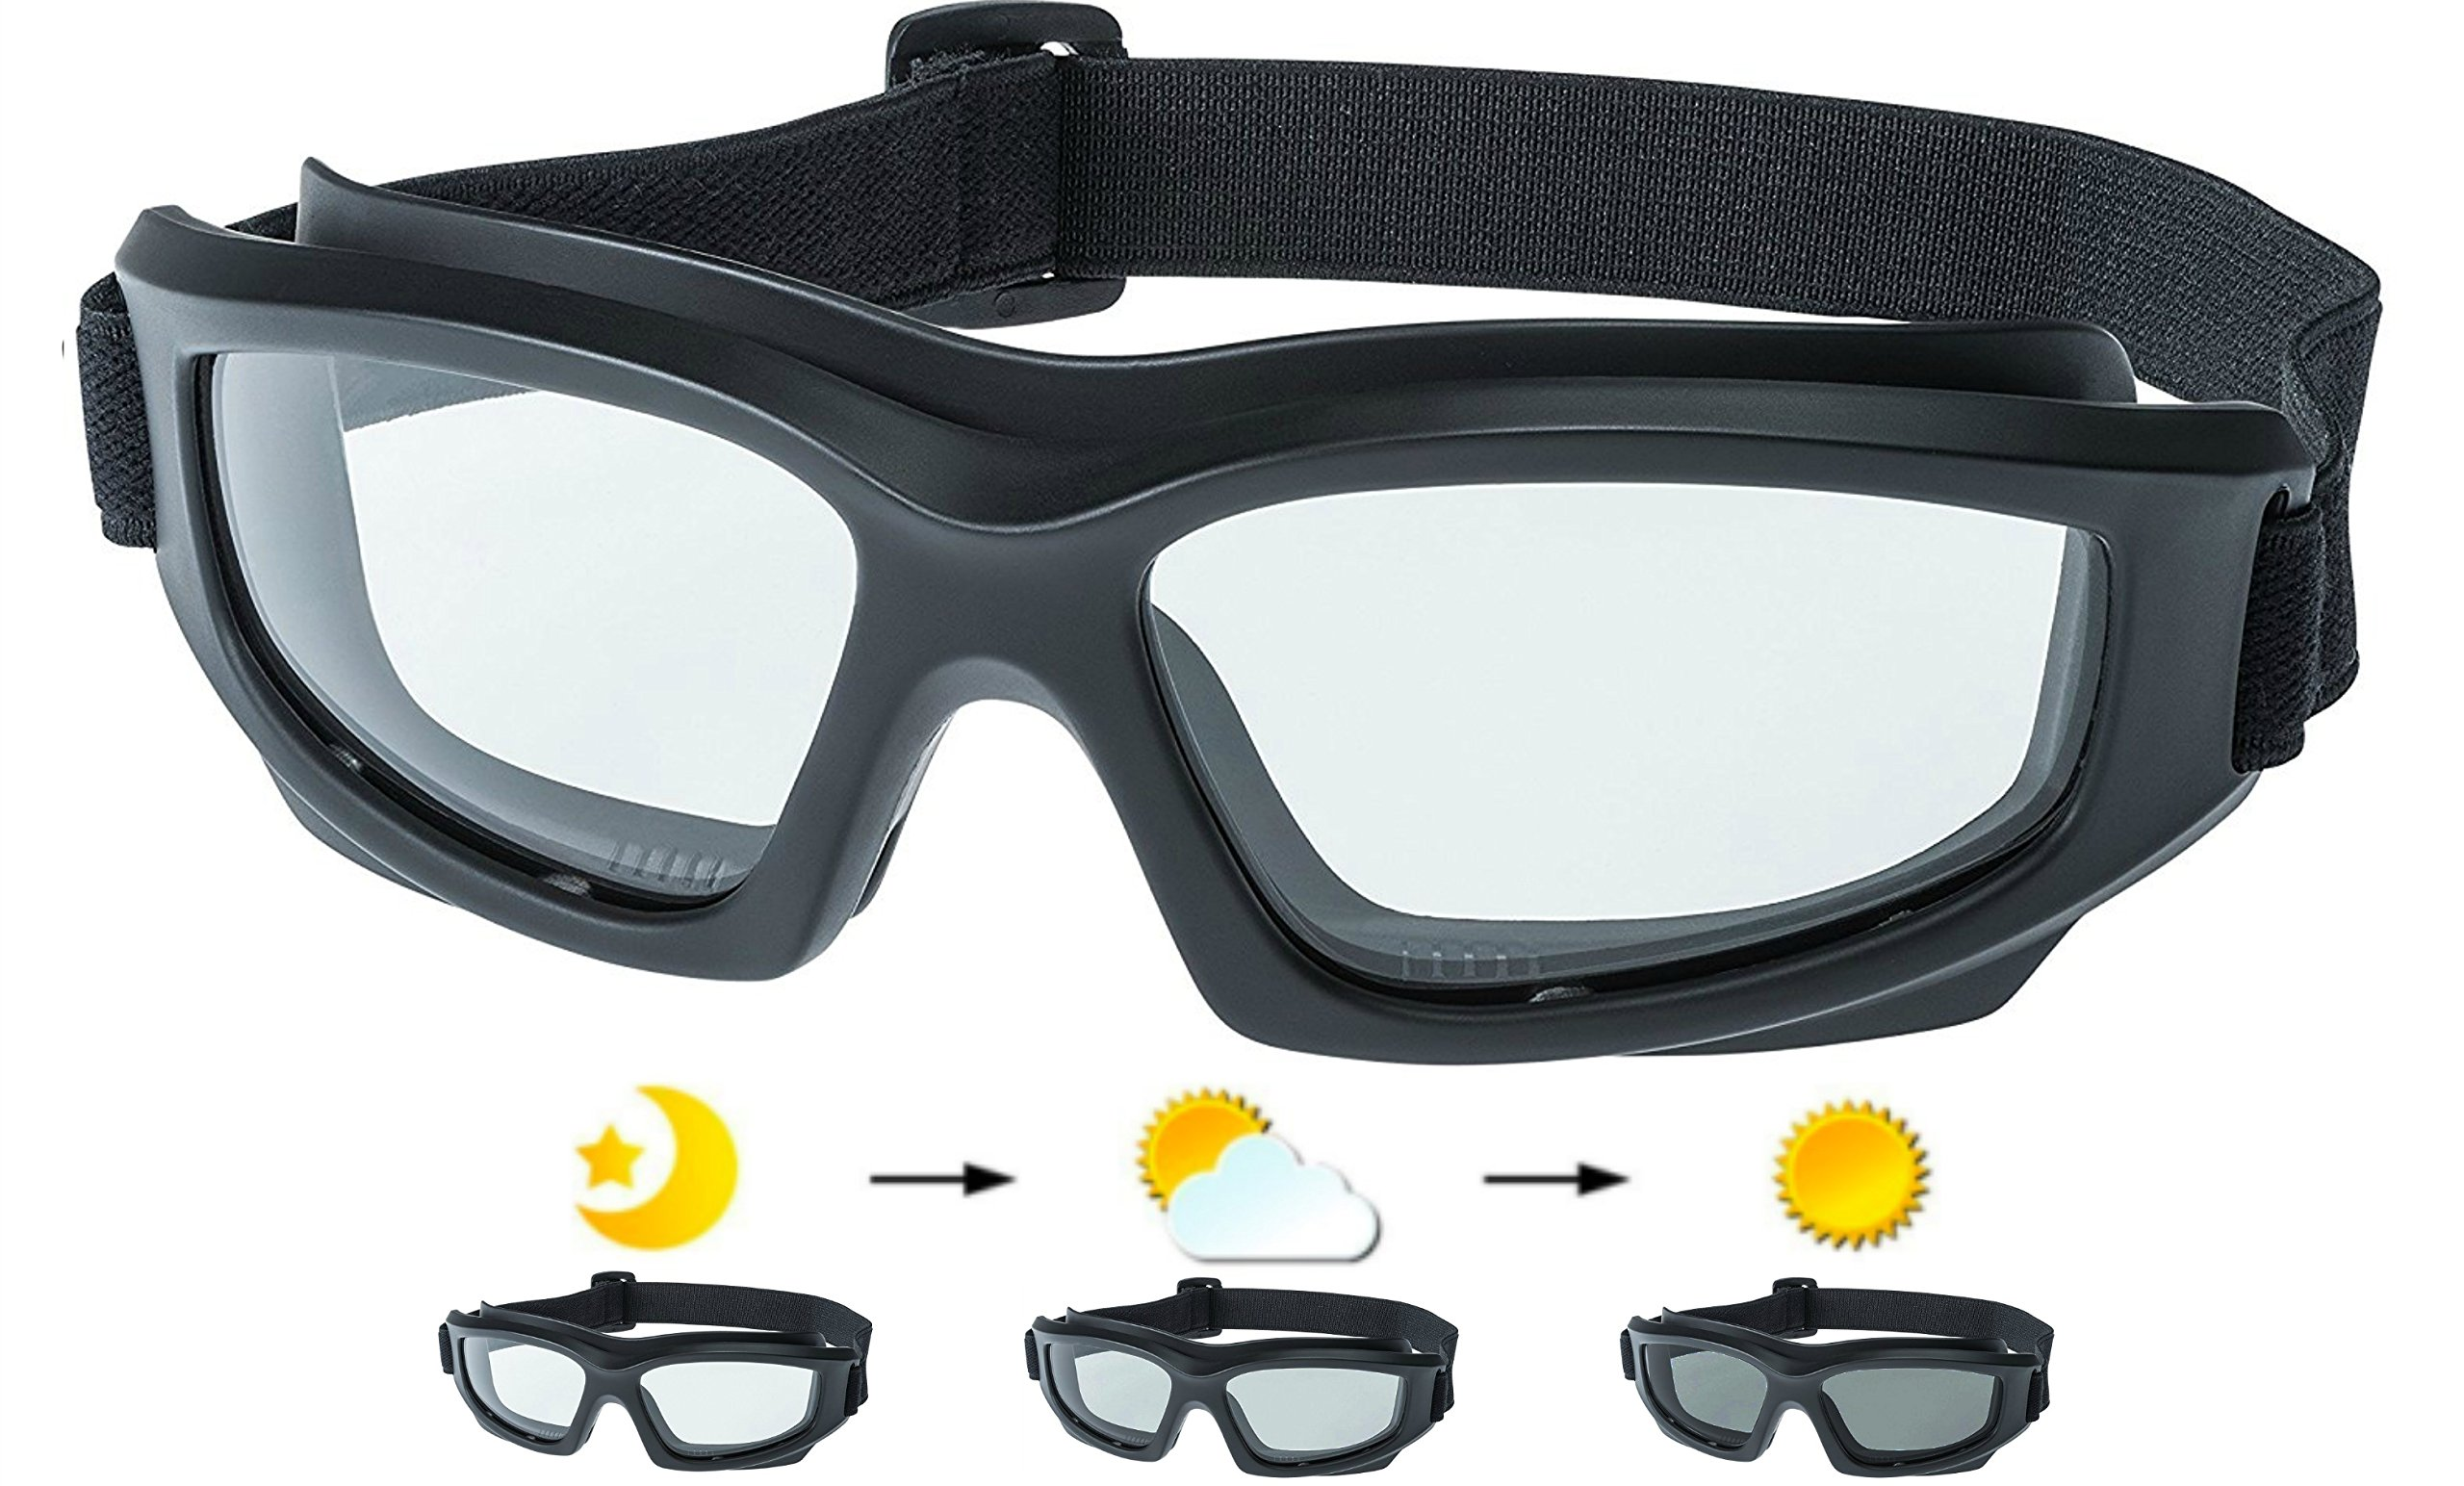 8aa7a63106 Galleon - Motorcycle Riding Goggles  Heavy-Duty Riding Goggles